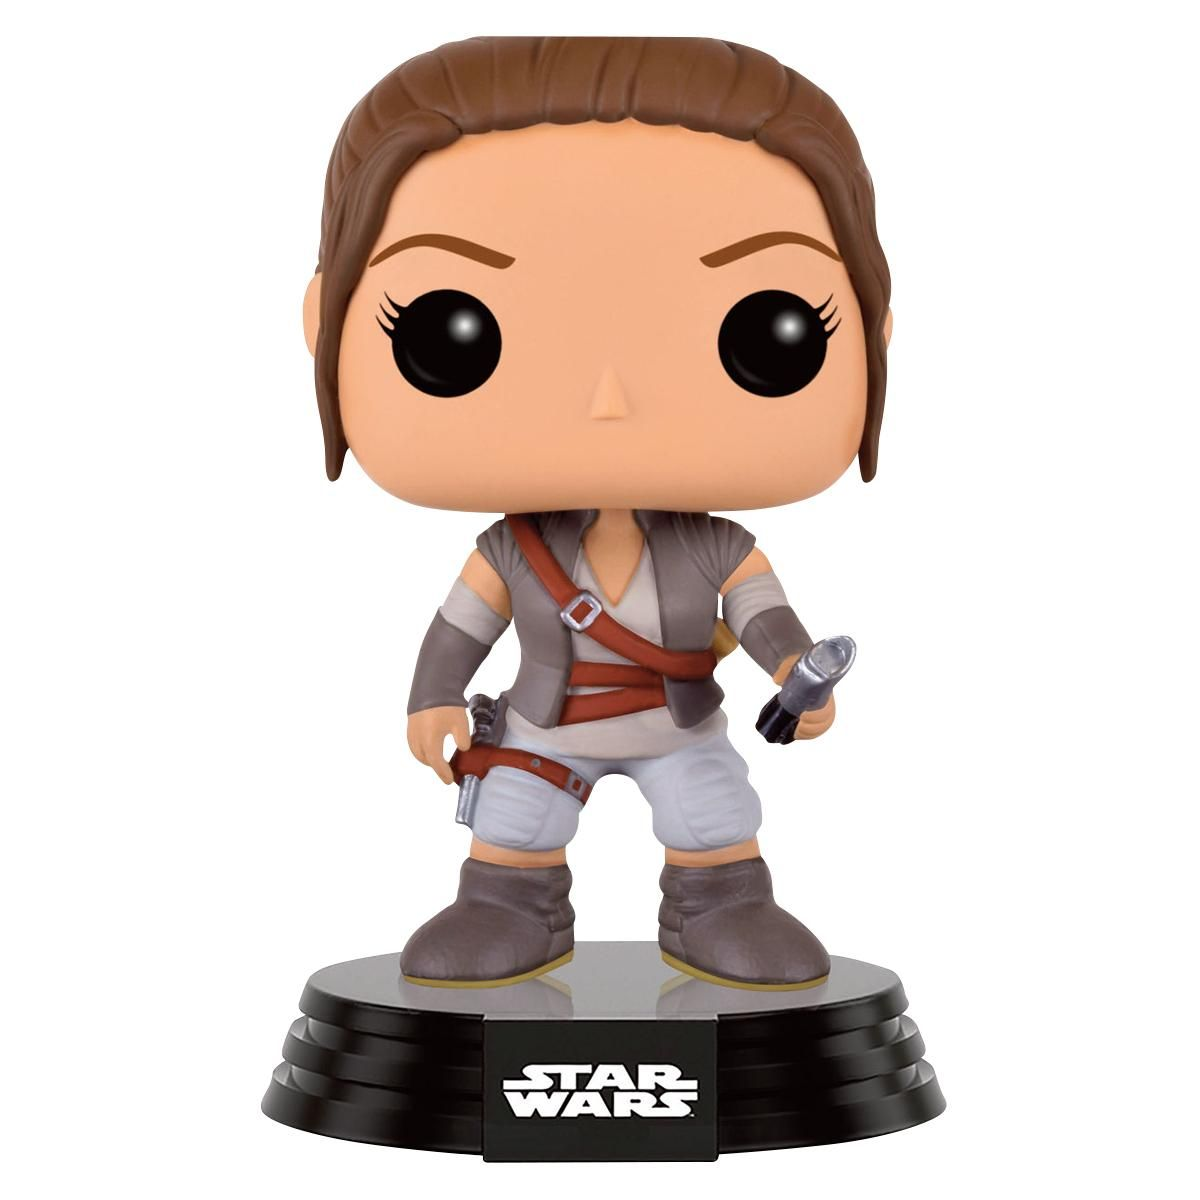 Edizione limitata! Statuetta decorativa The Force Awakens Rey Final Scene Lightsaber Hilt di Star Wars del brand Funko collezione Bobble Head.